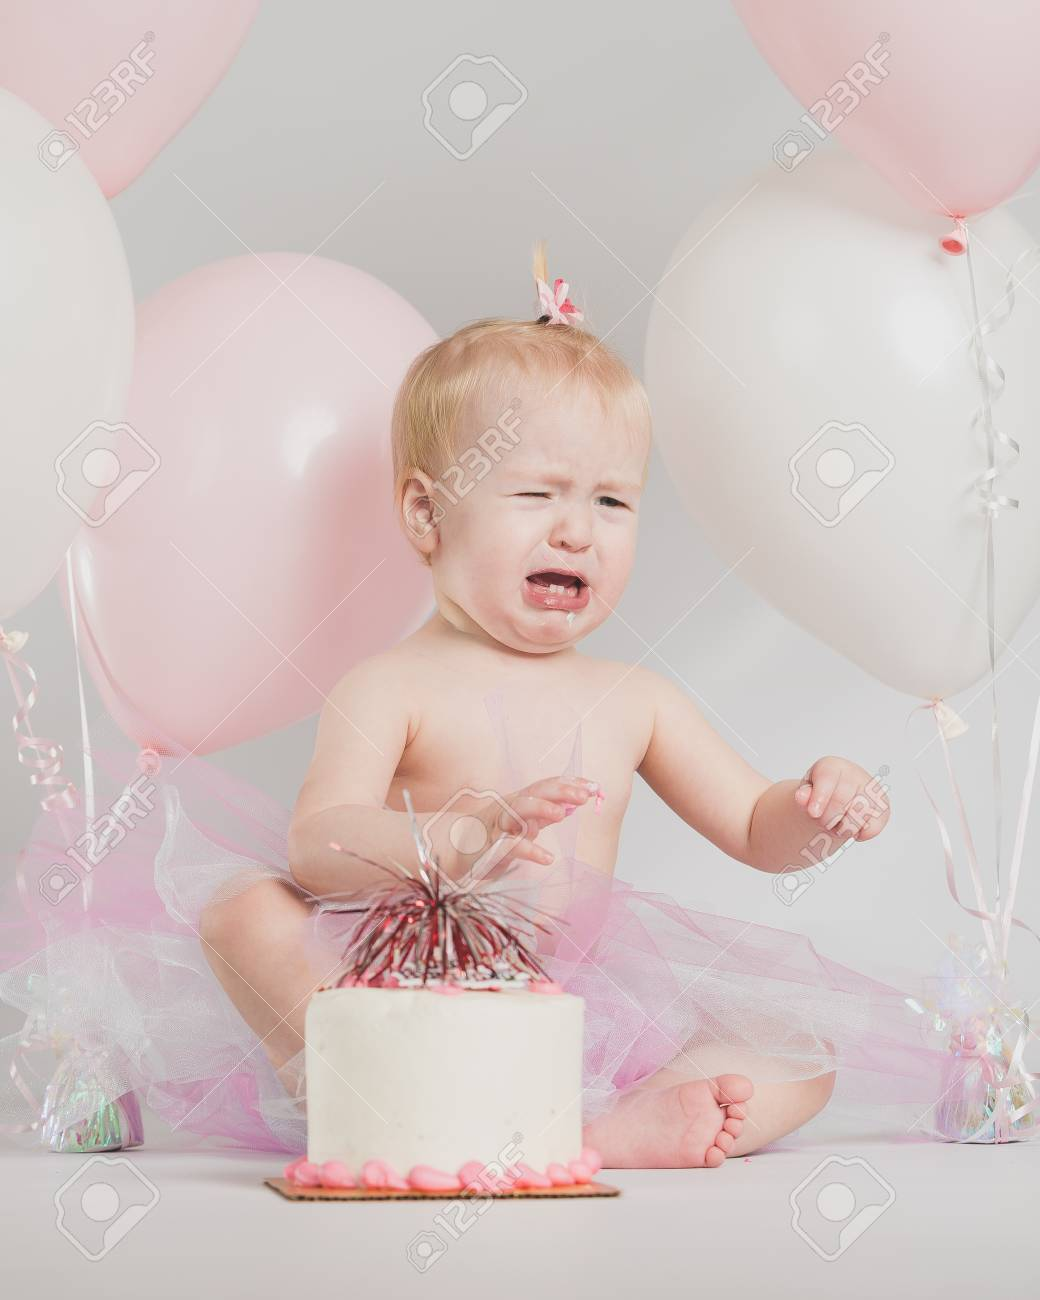 One Year Old Girl Birthday Portraits With Smash Cake Stock Photo